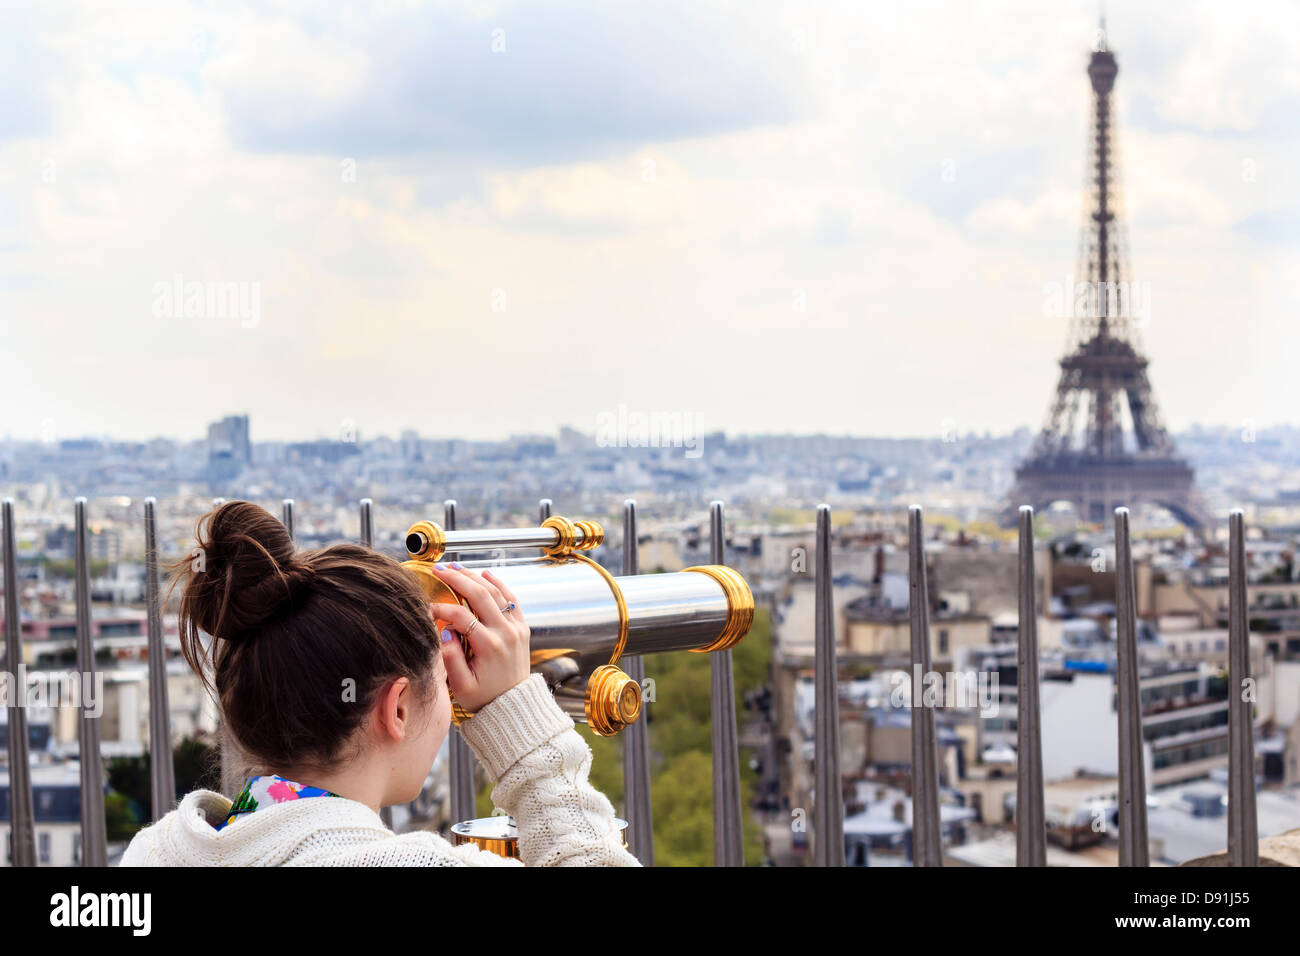 Girl looking at the Eiffel Tower through observation telescope on the rooftop of the Arc de Triump - Stock Image